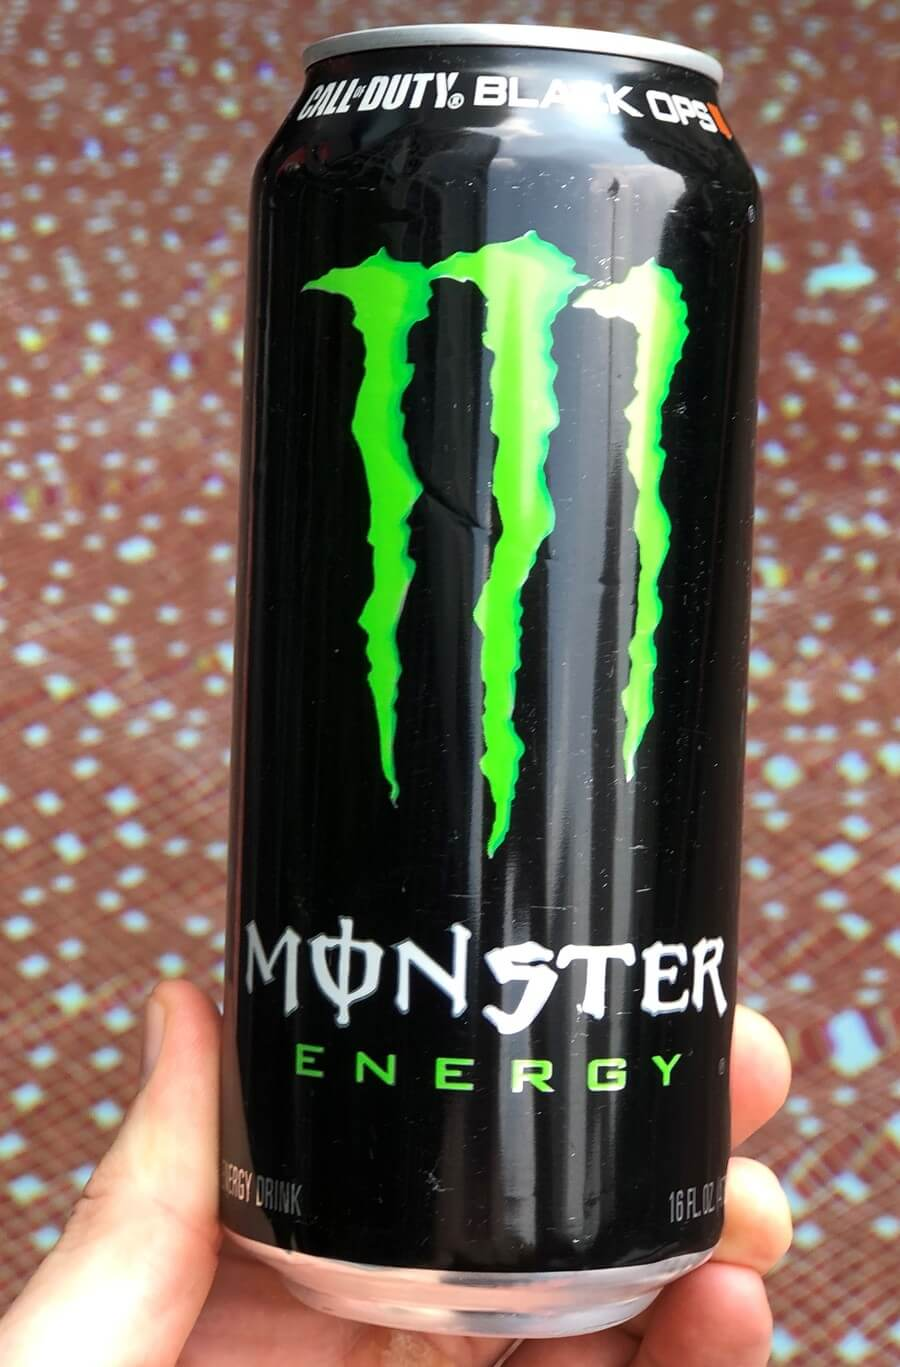 A close-up of Monster Energy.